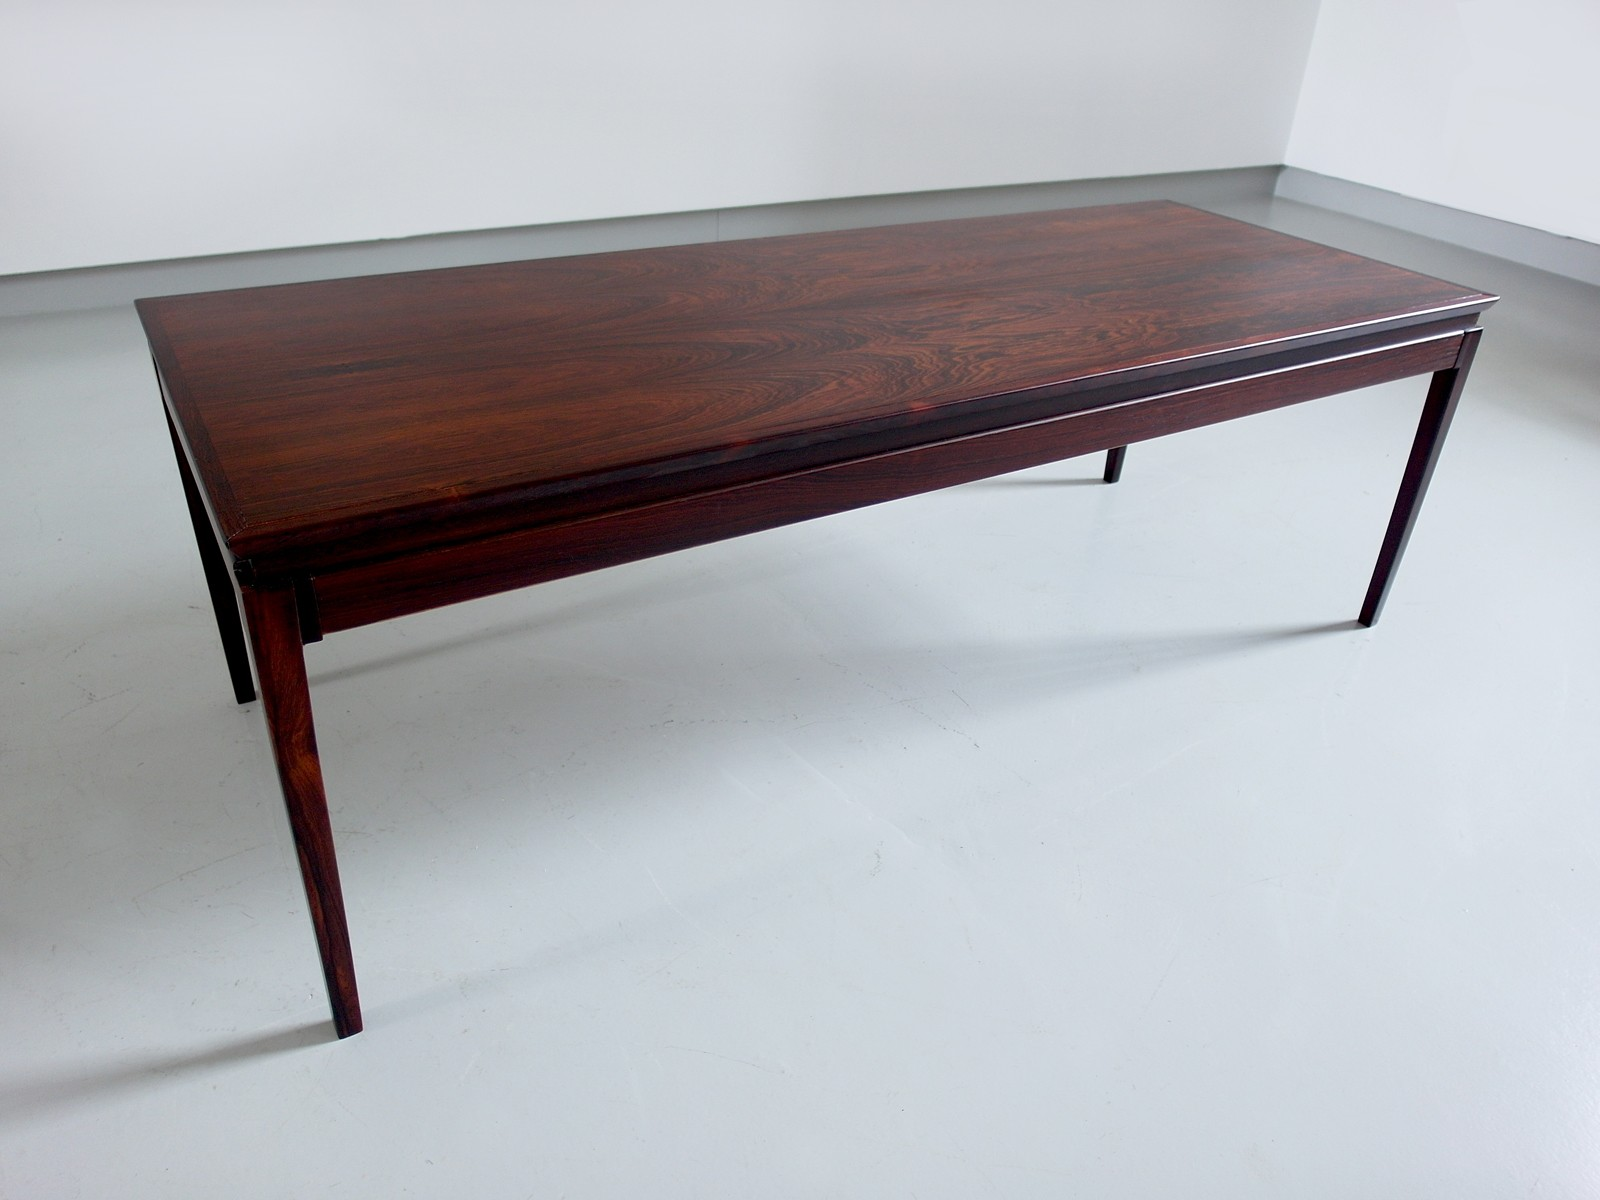 Extendable Coffee Table in Rosewood by Kai Kristiansen 1960s